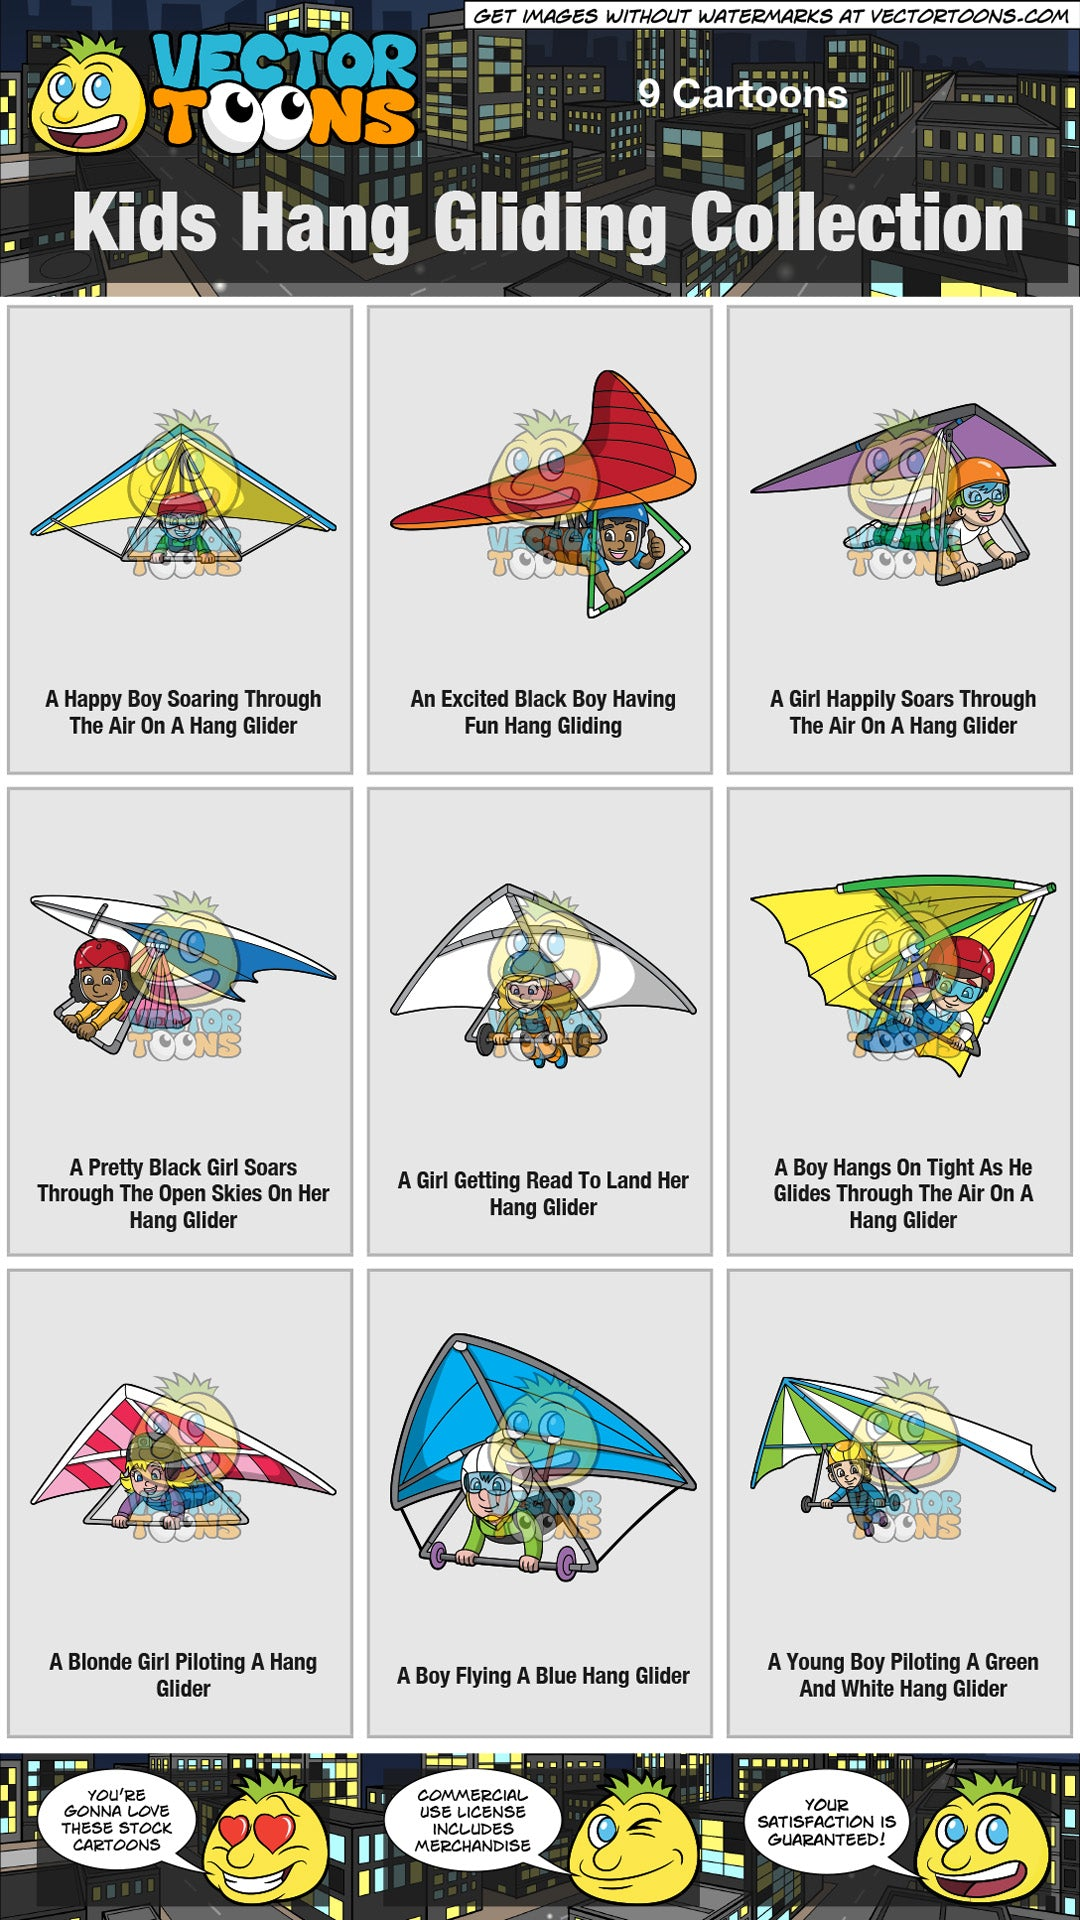 Kids Hang Gliding Collection